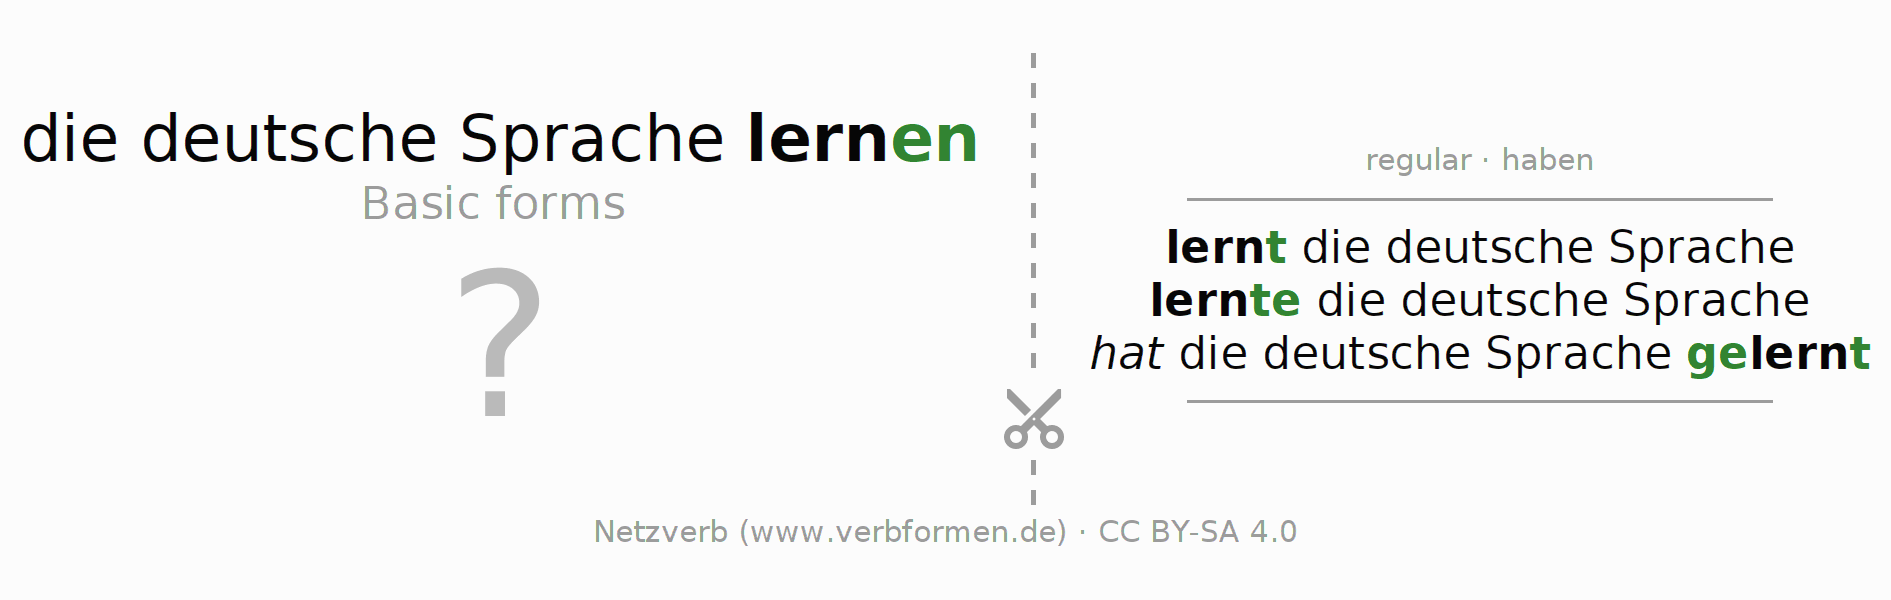 Flash cards for the conjugation of the verb die deutsche Sprache lernen